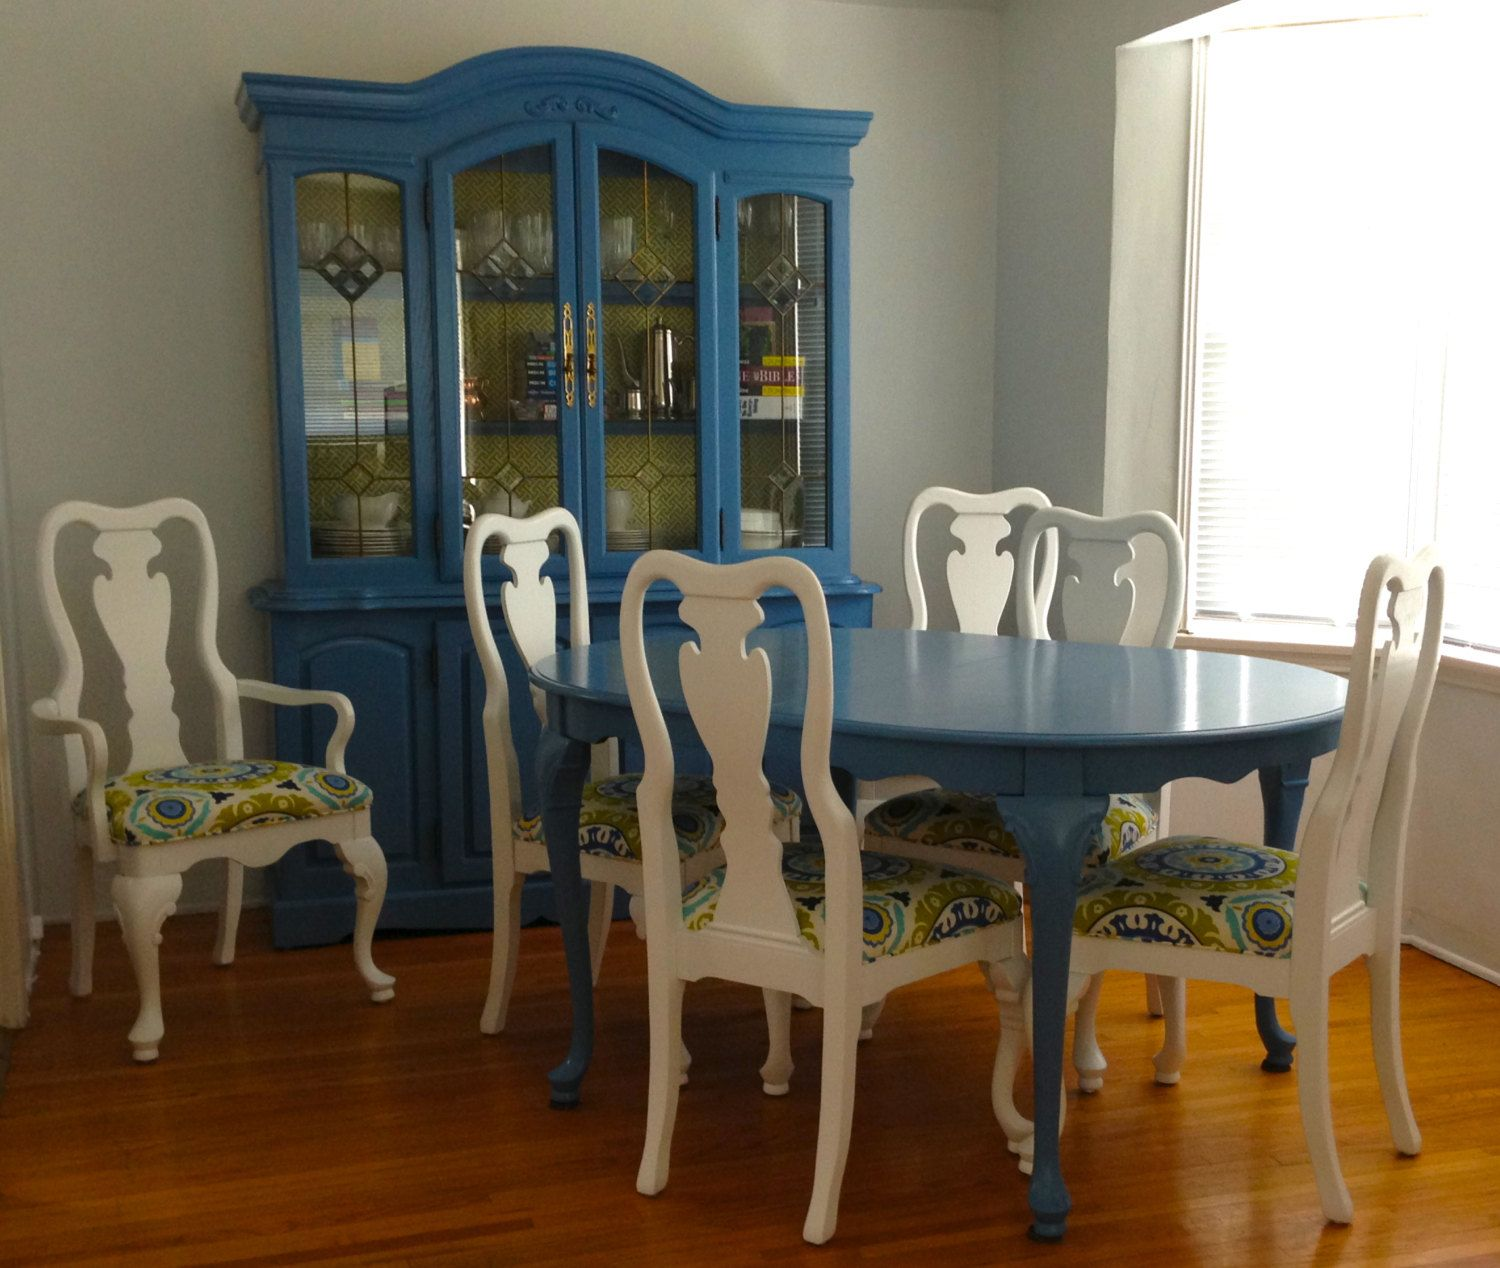 Refinished Dining Room Tables: Custom Refinished Dining Table, 6 Chairs, China Cabinet